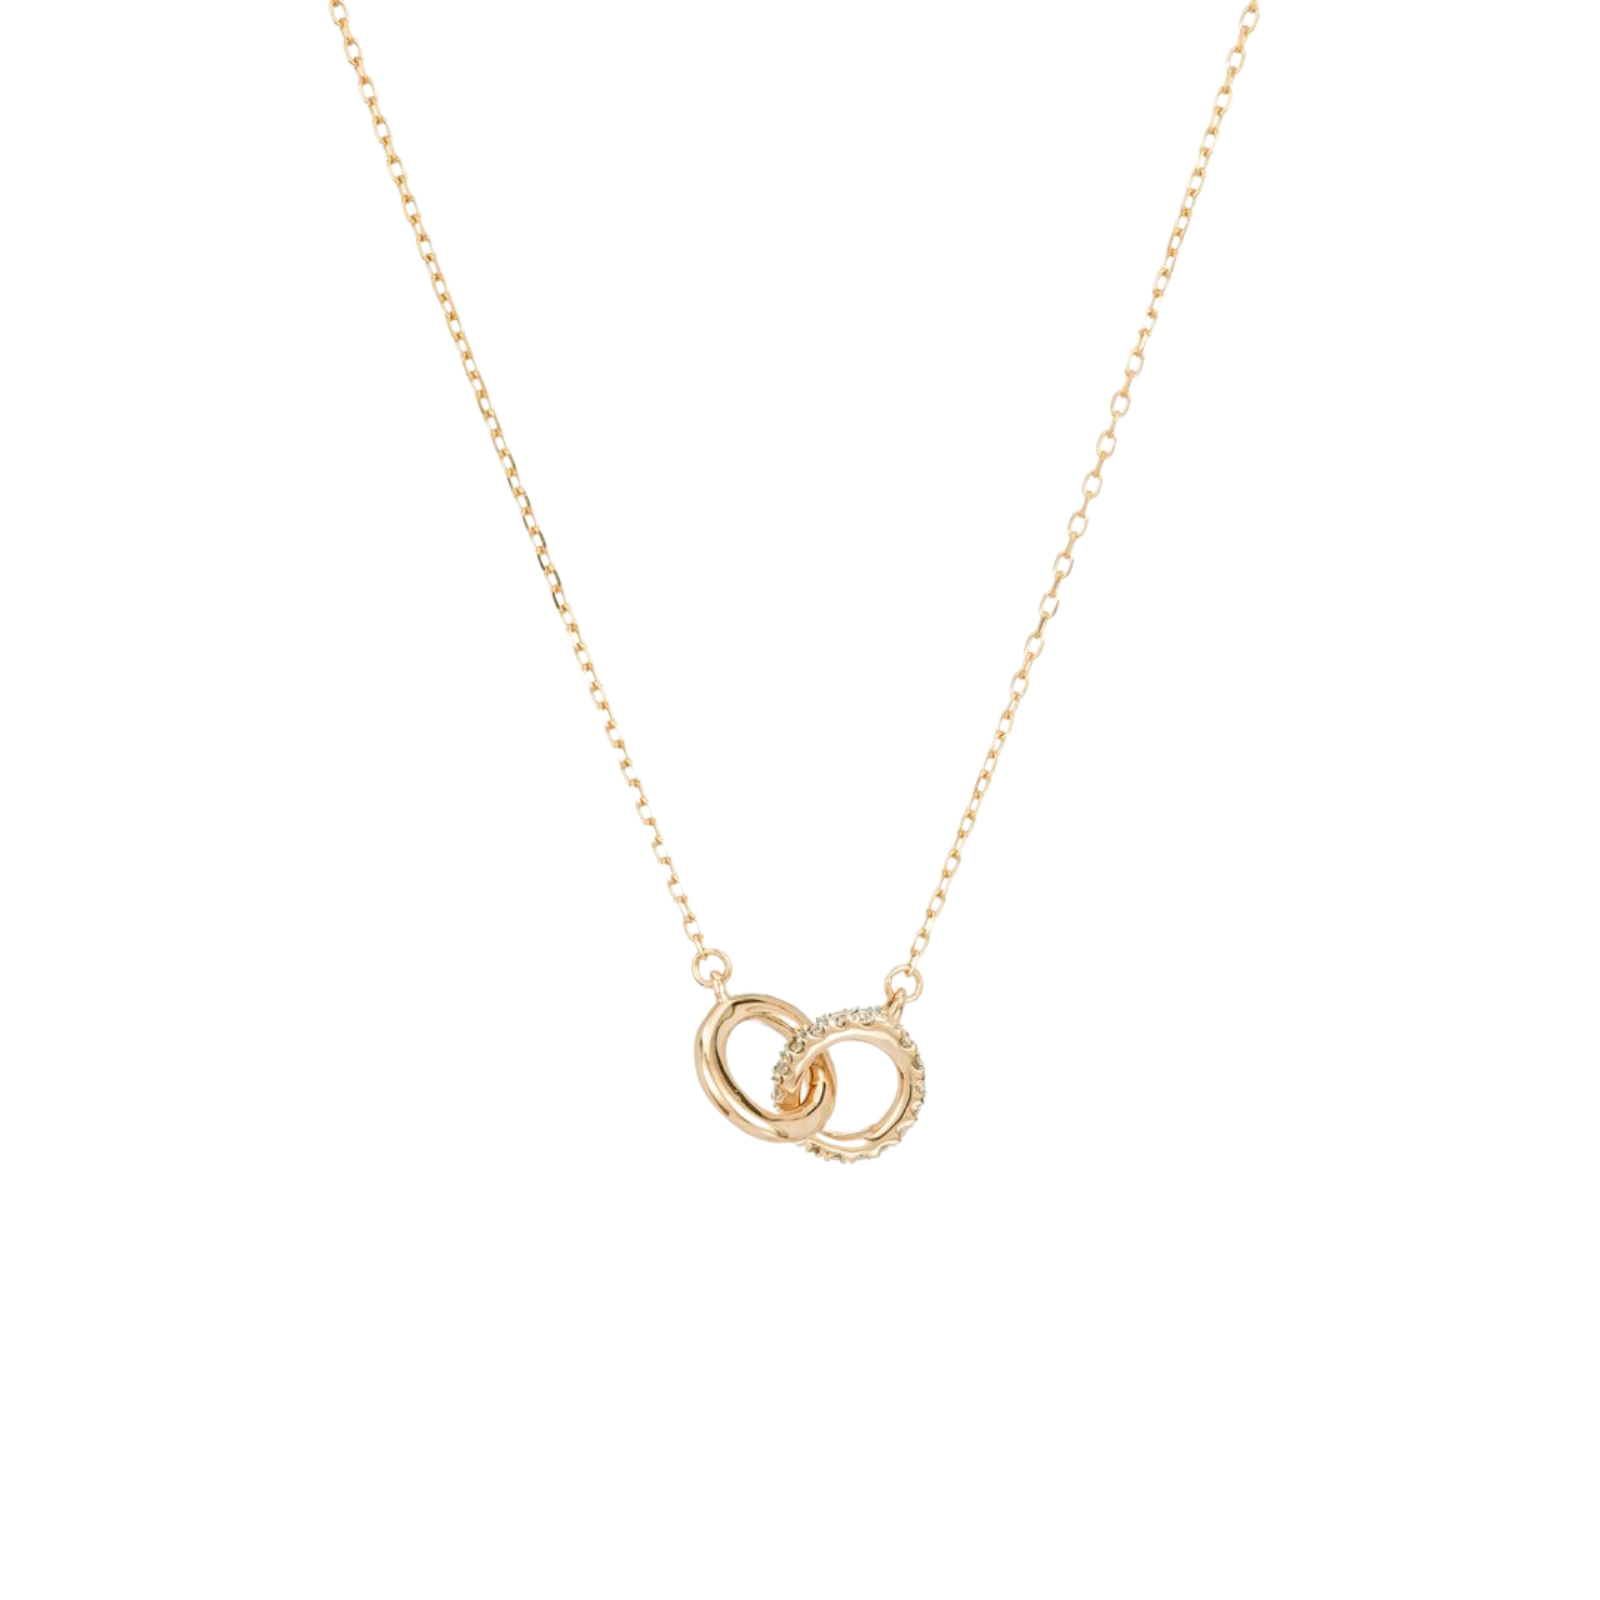 Adina Reyter Interlocking Loop Necklace Gold